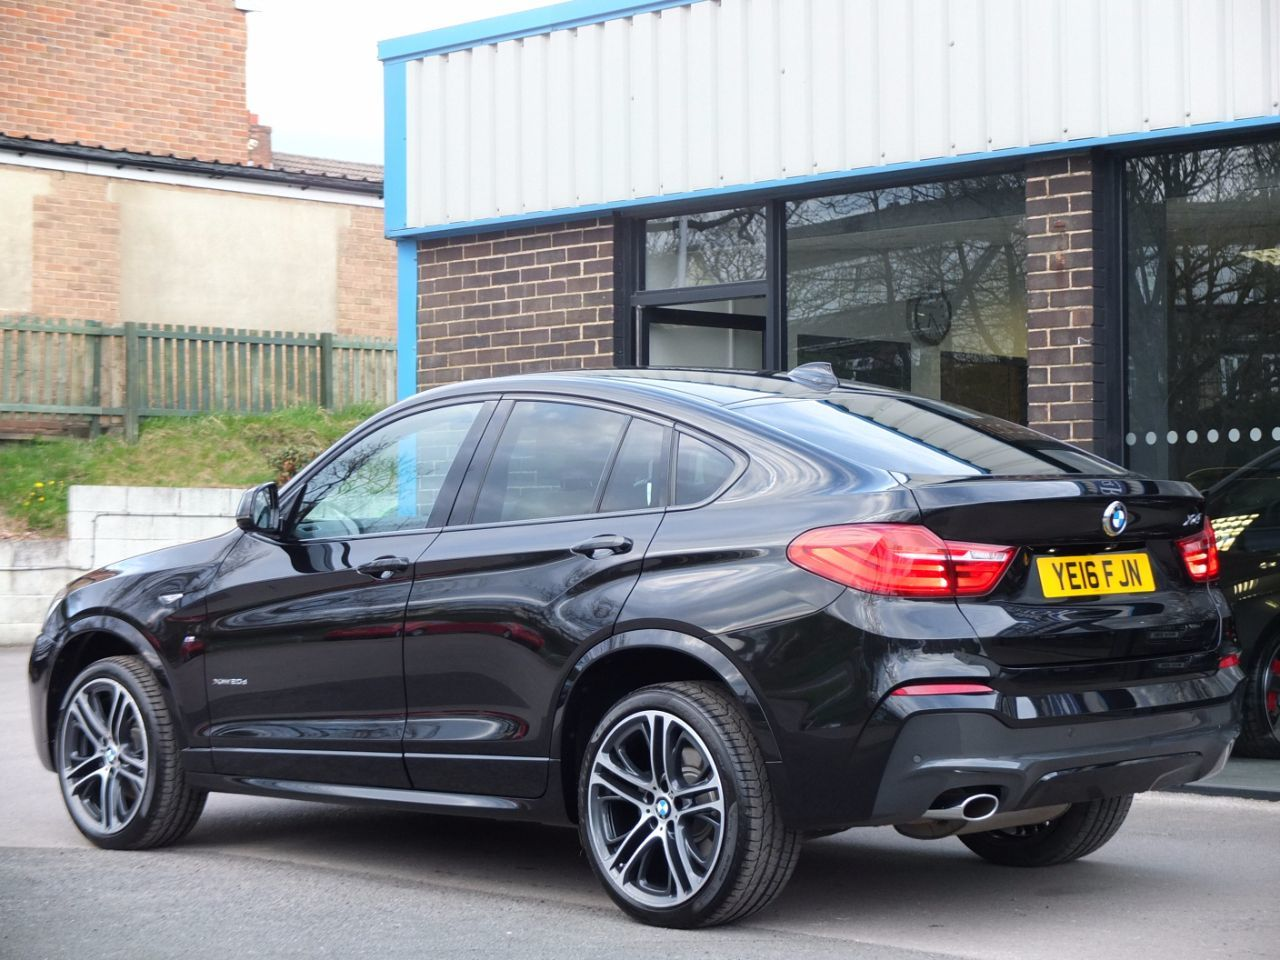 used bmw x4 xdrive20d m sport plus pack auto for sale in bradford west yorkshire fa roper ltd. Black Bedroom Furniture Sets. Home Design Ideas